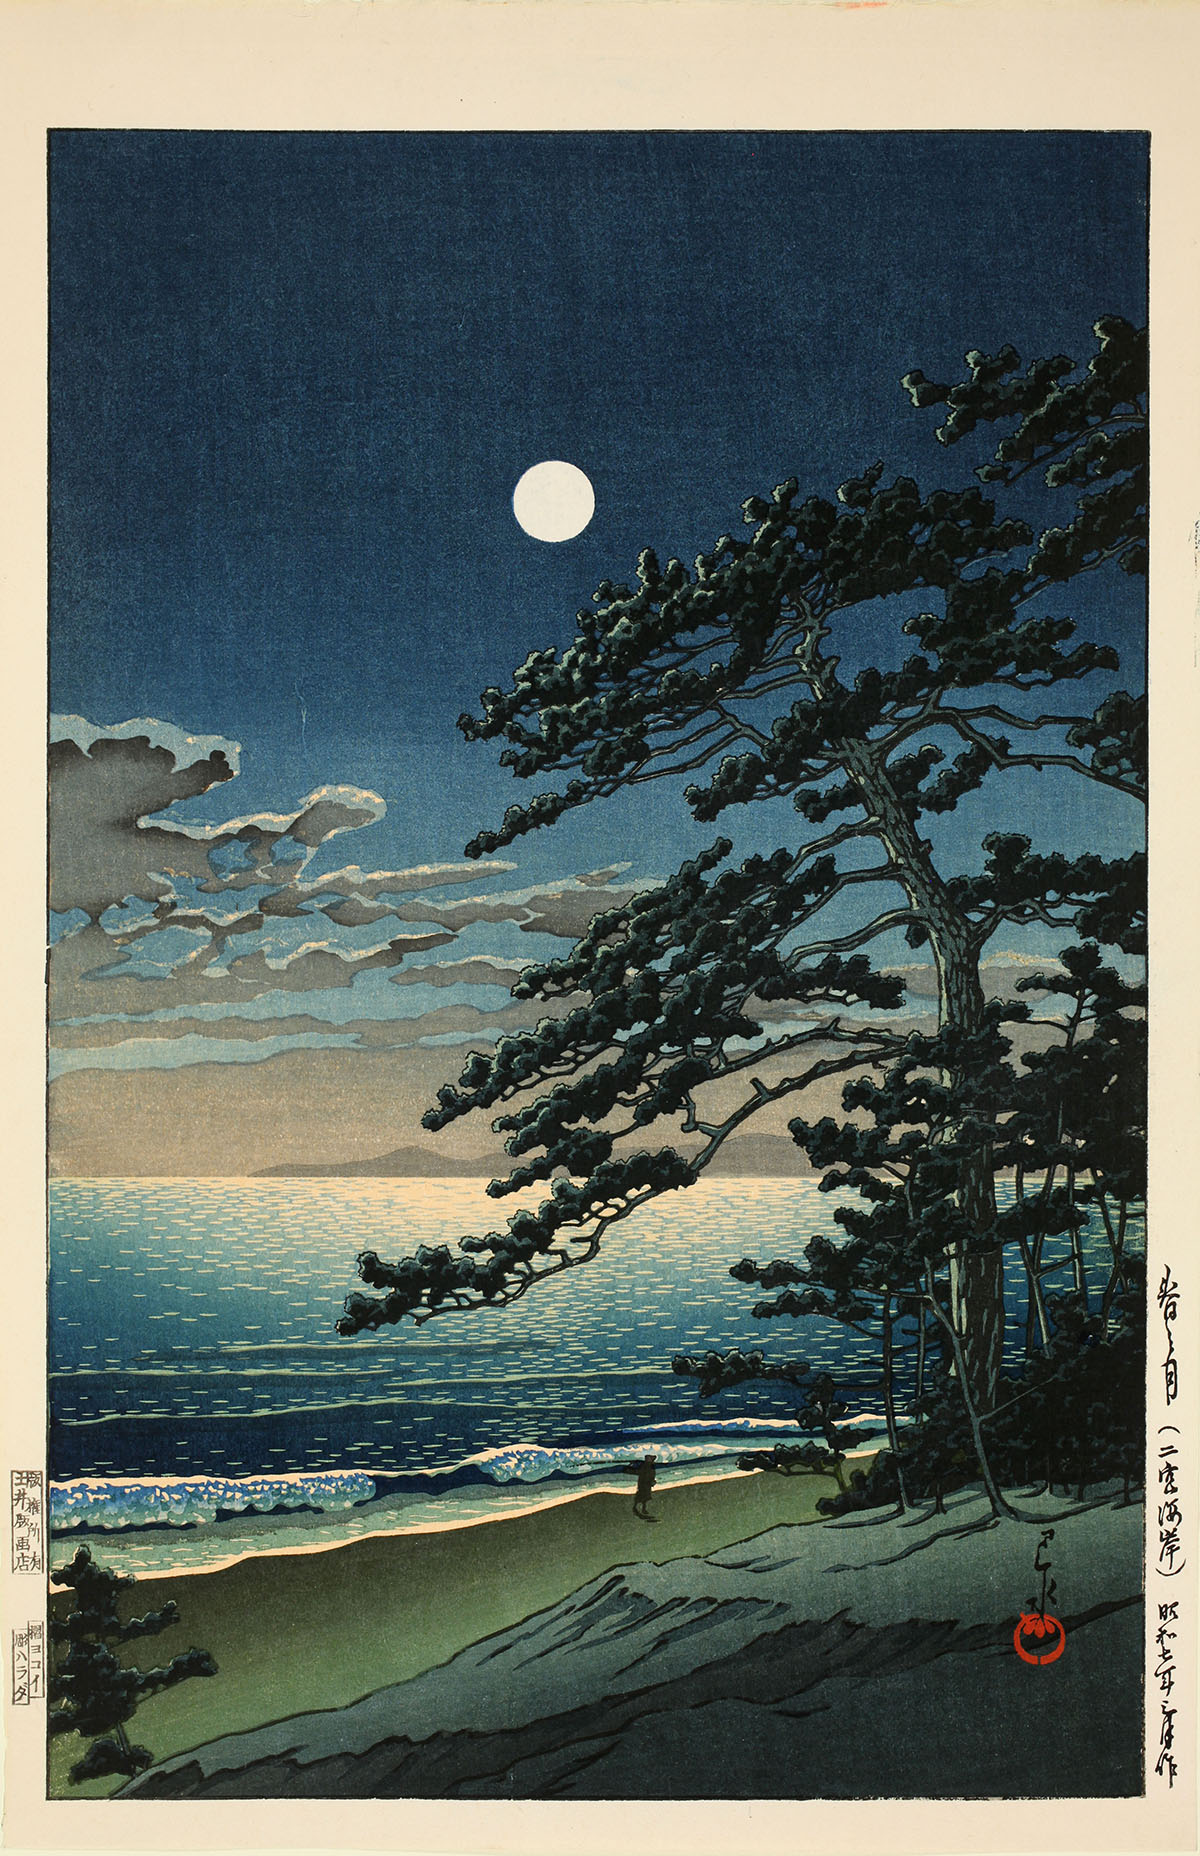 View of Spring Moon, 1932, color woodblock print by Kawase Hasui (Japanese, 1883 to 1957)